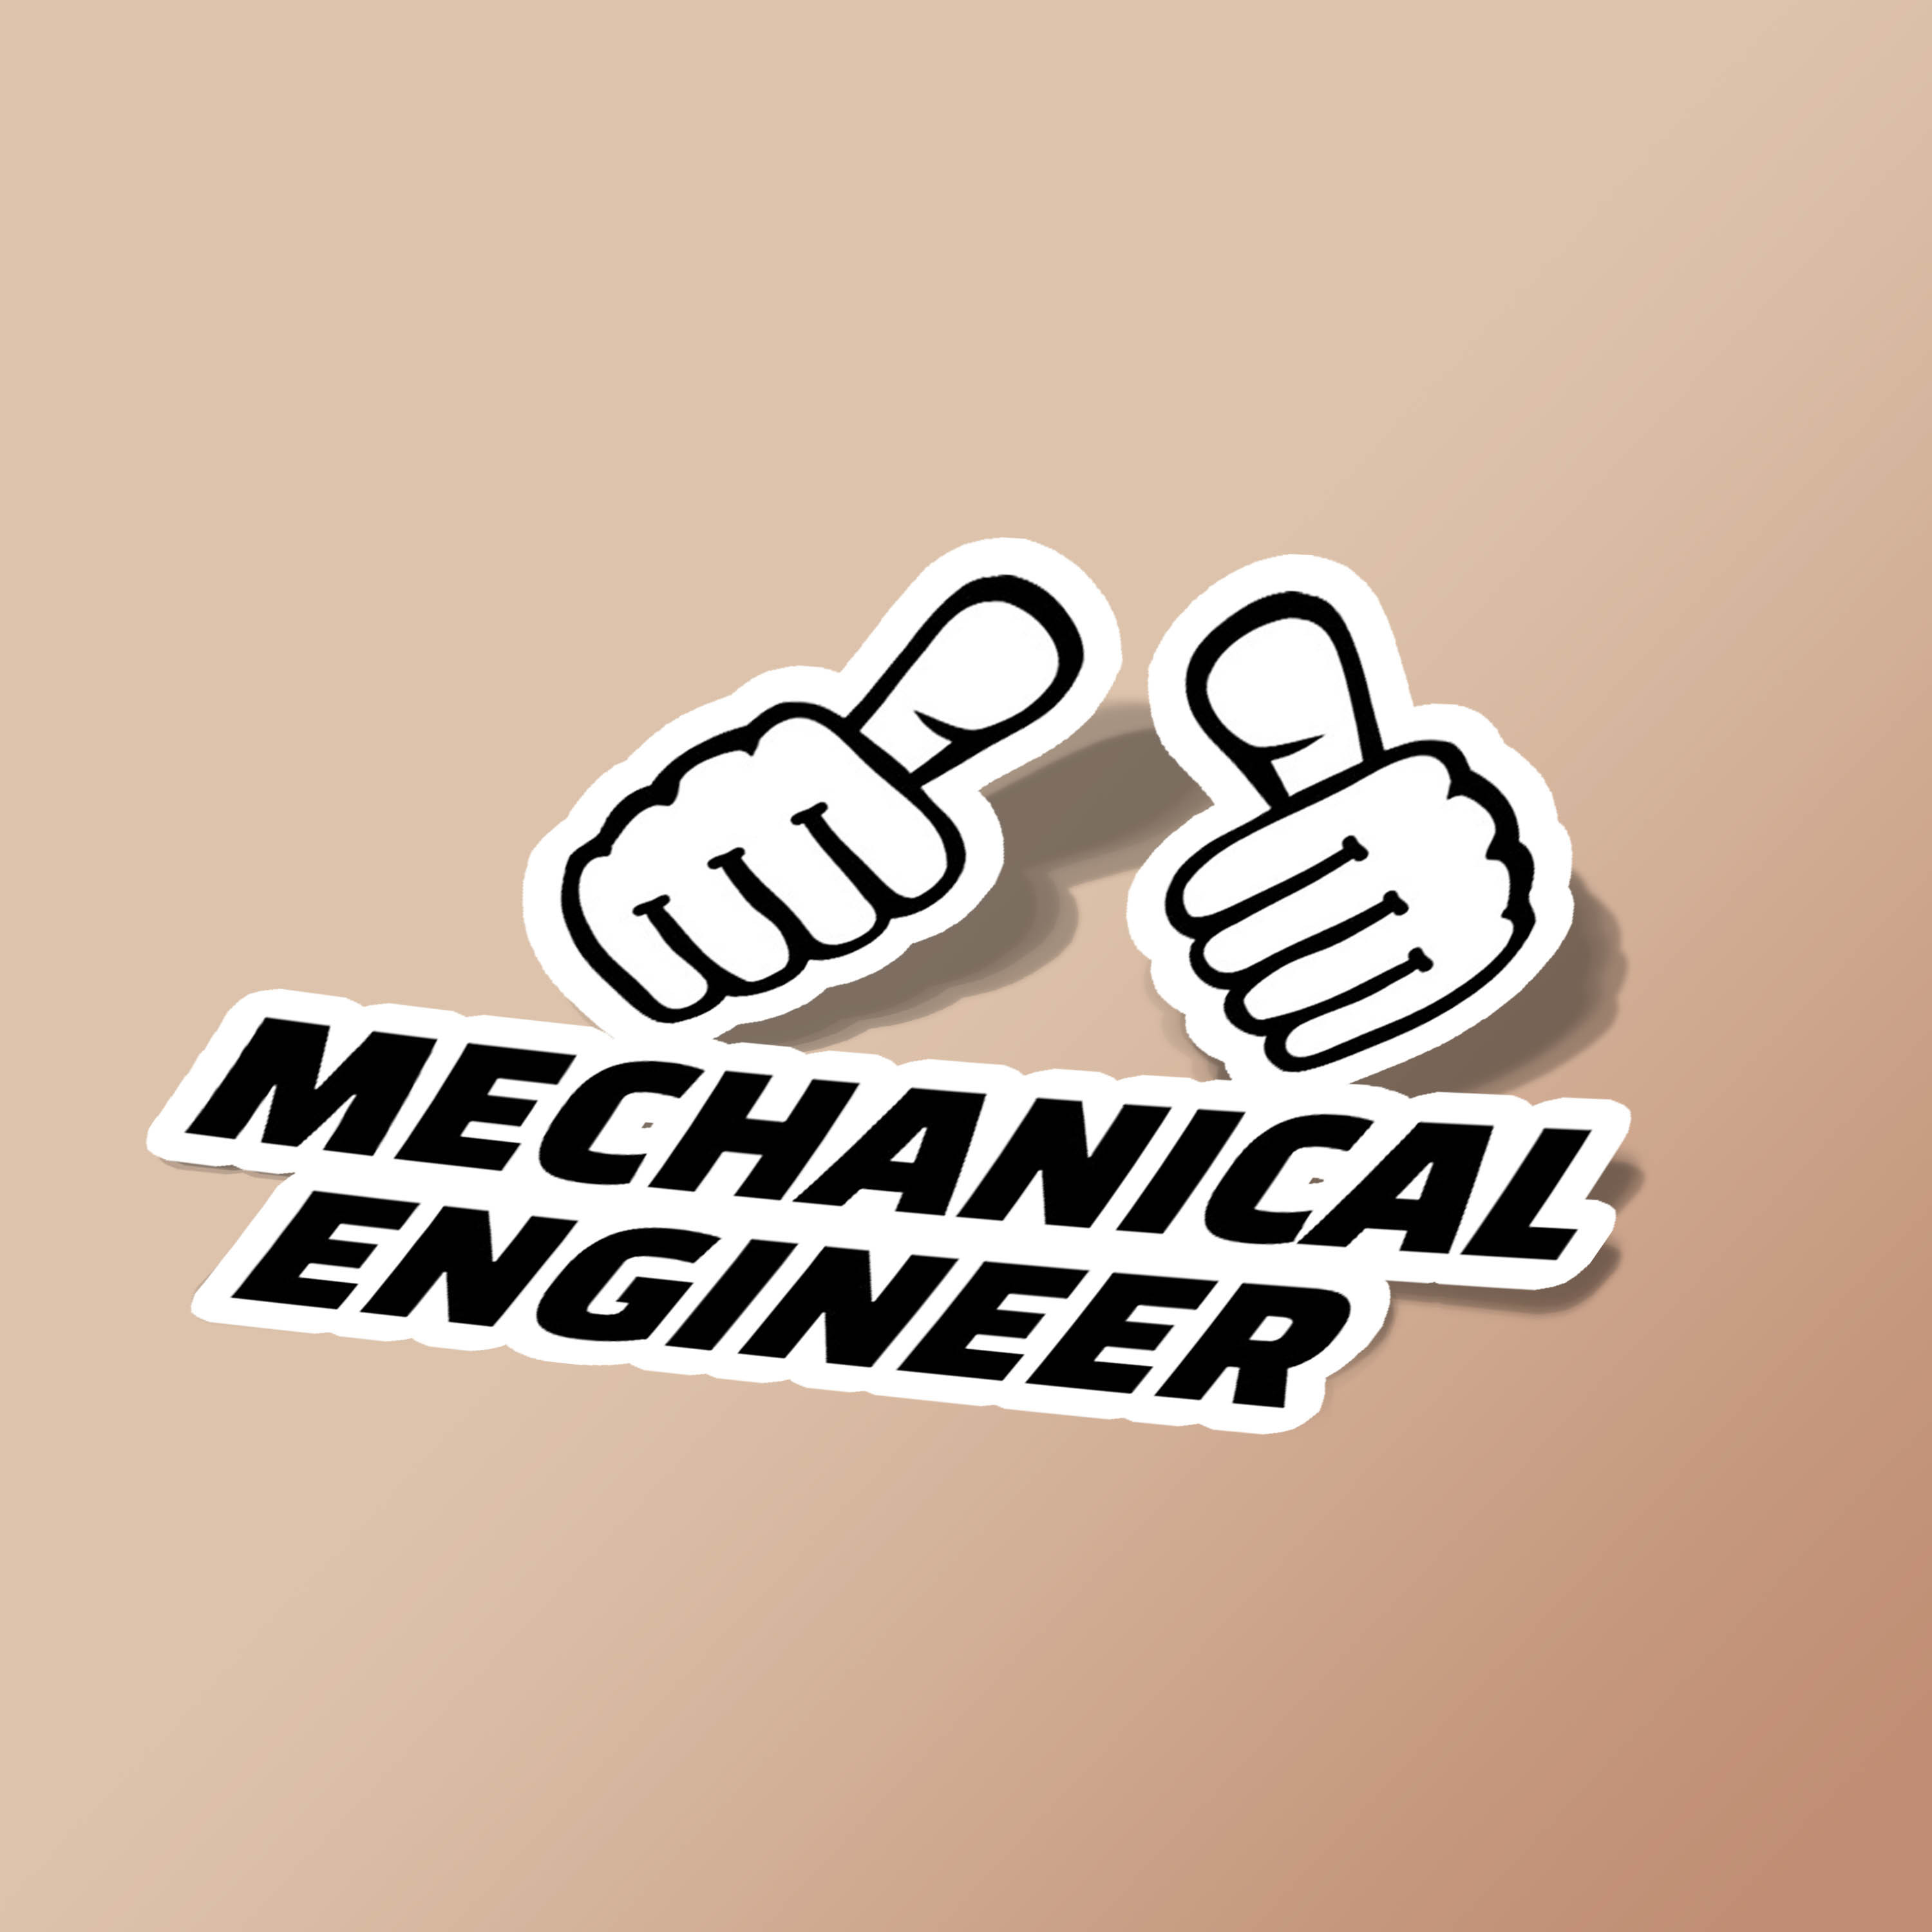 Mechanical engineer 2